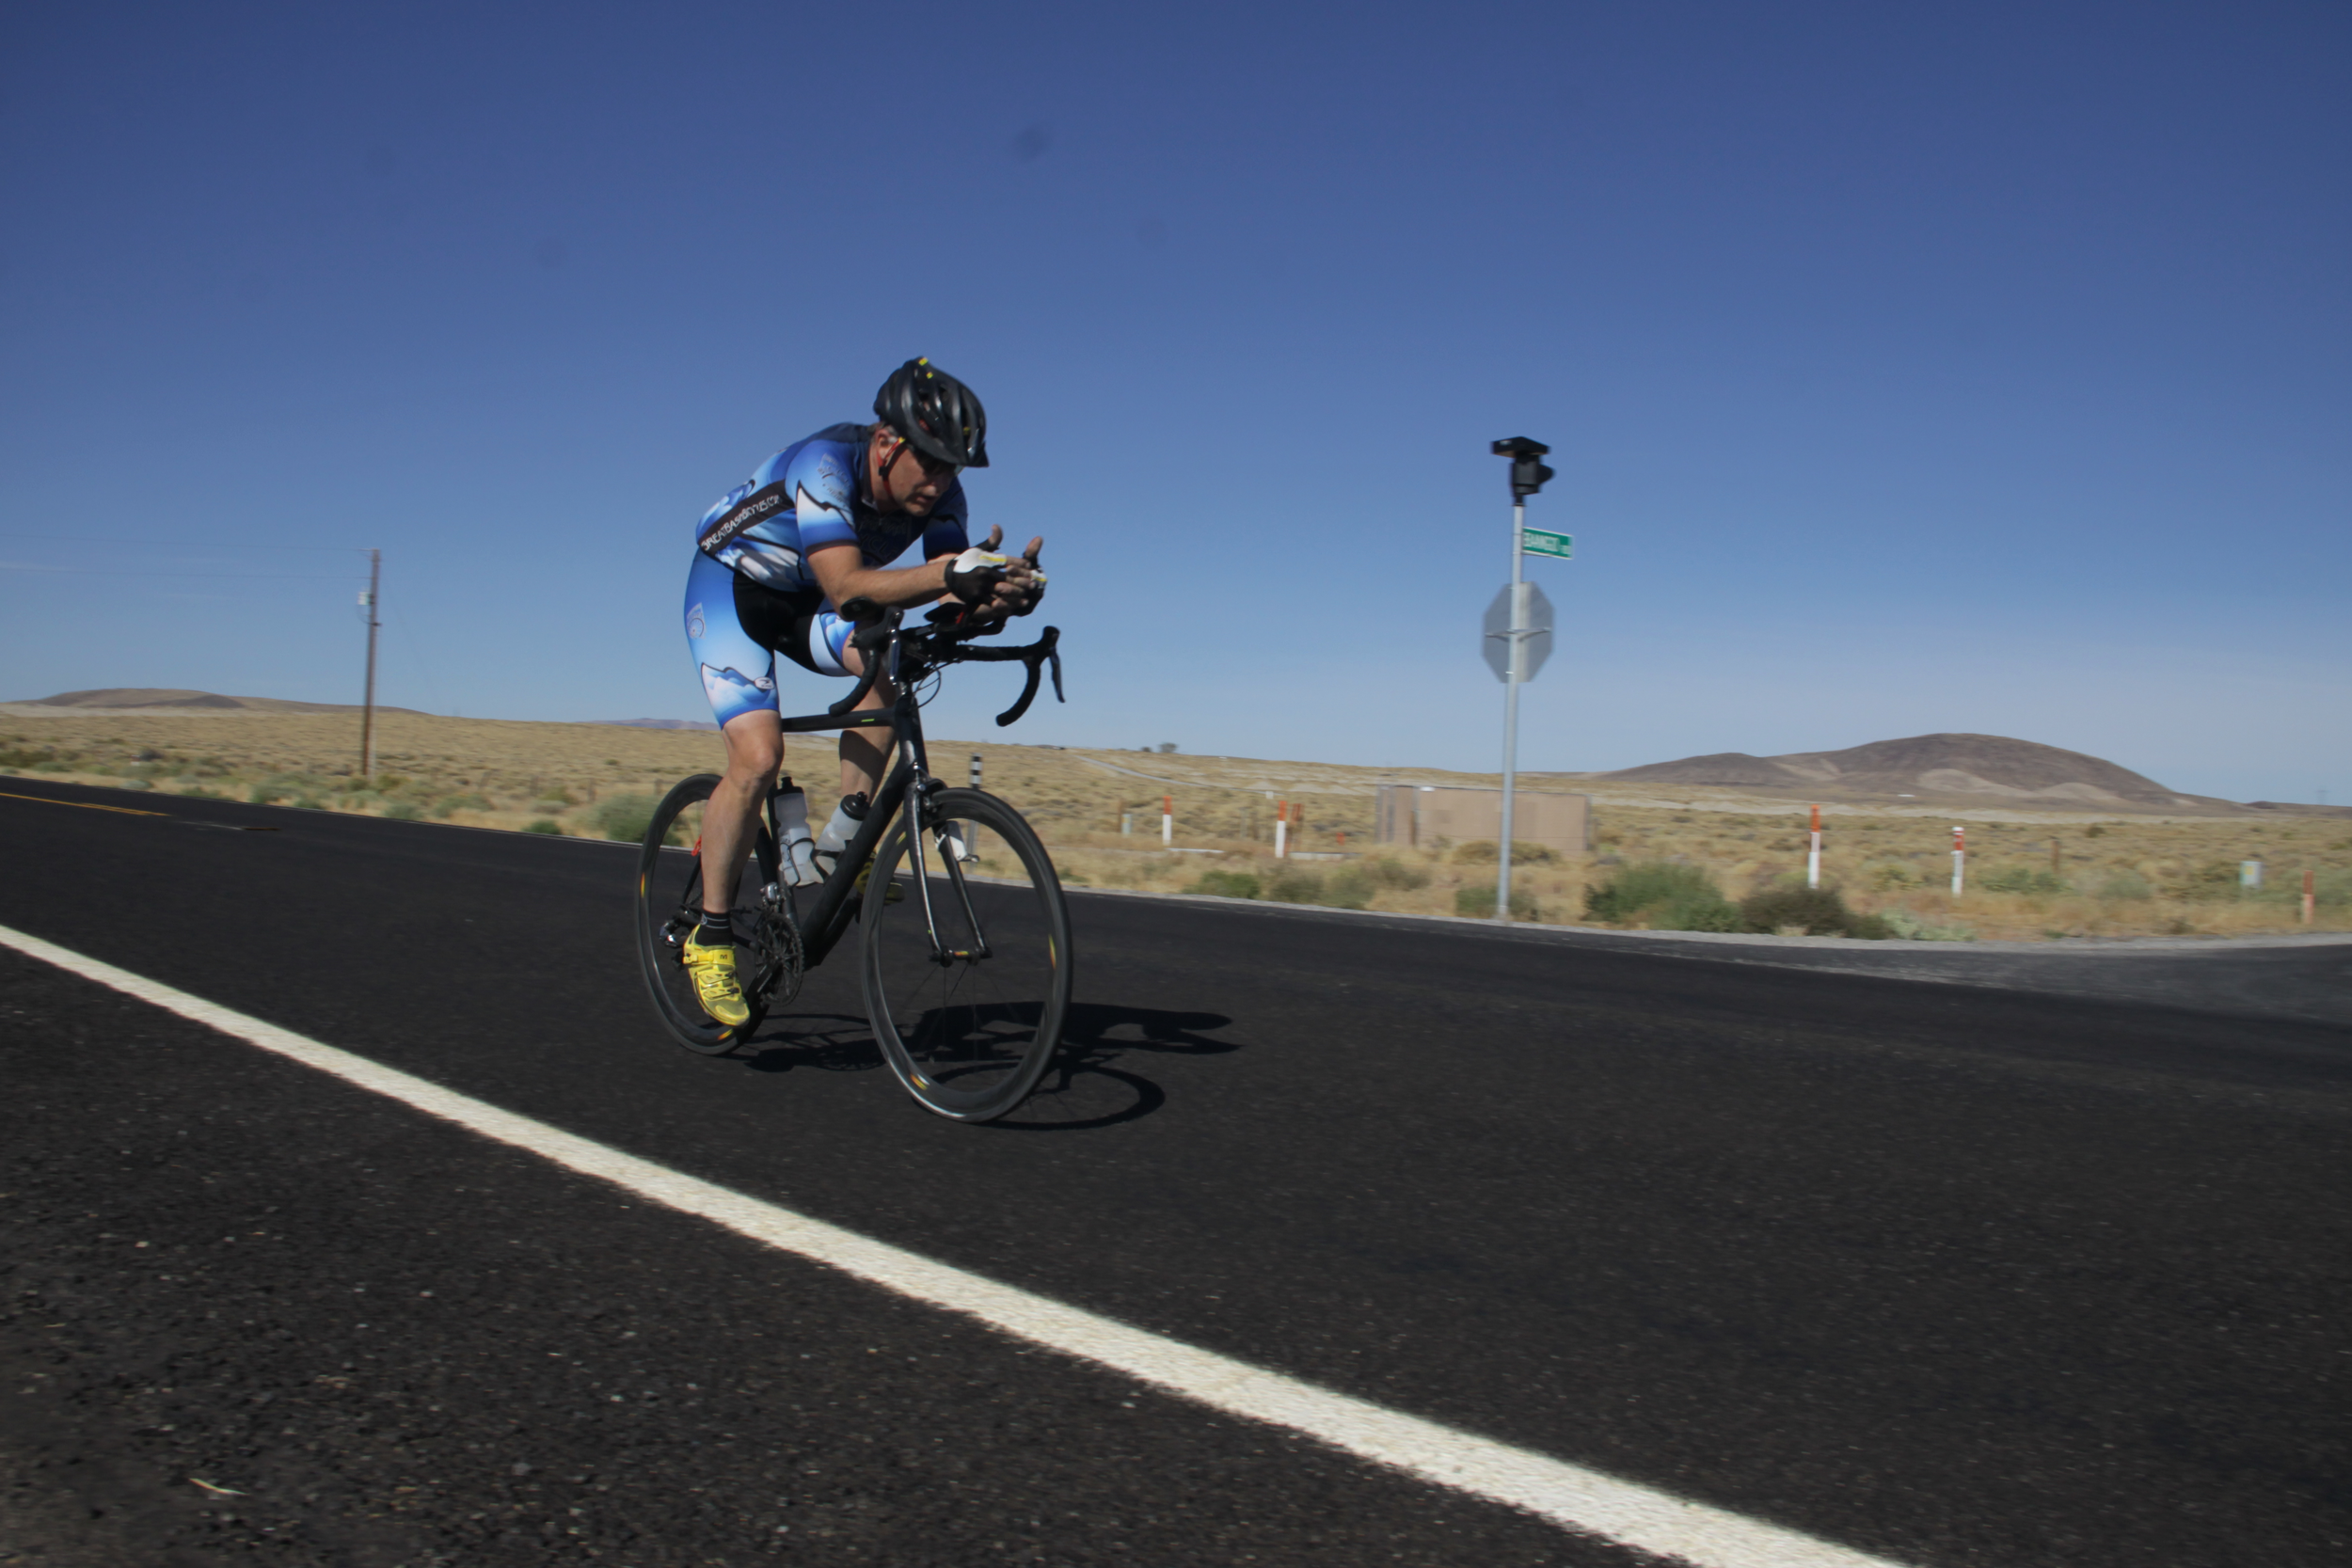 Rich Staley, showing them how it's done on Stage 2 of the Silver State 508.